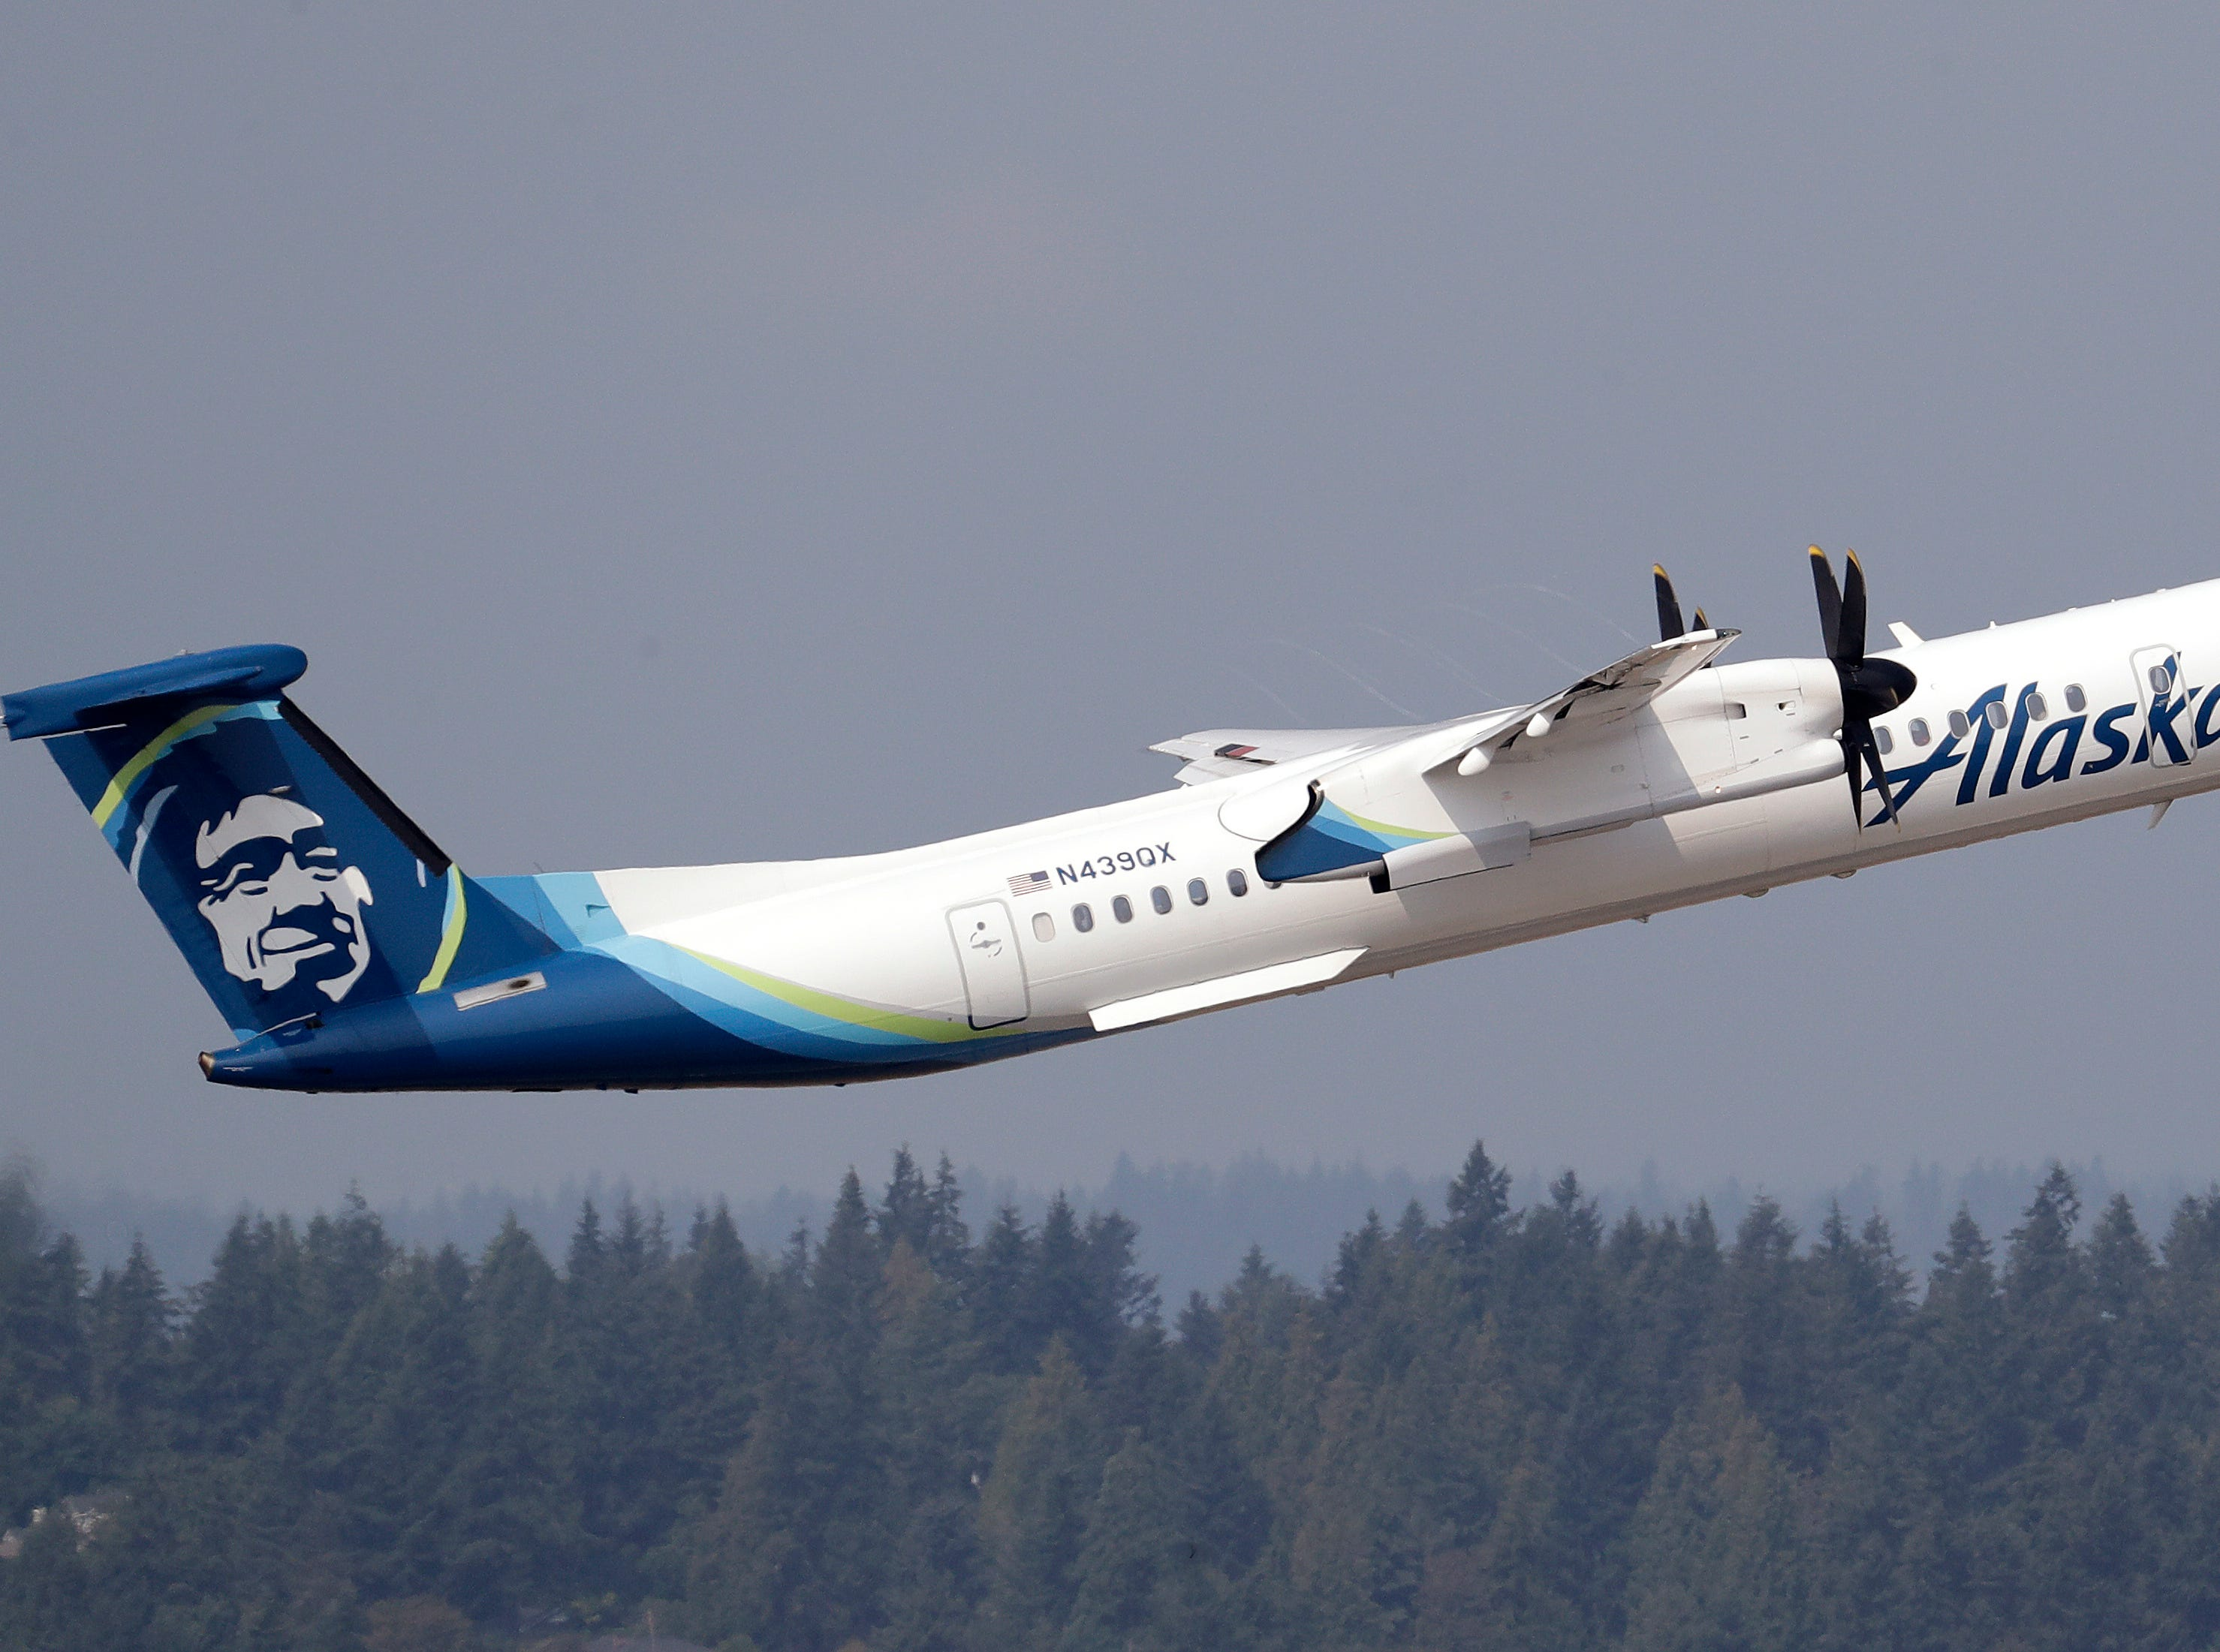 FILE - In this Aug. 13, 2018, file photo, a Horizon Air Q400 turboprop airplane, part of Alaska Air Group, takes off from Seattle-Tacoma International Airport, in SeaTac, Wash. The plane is the same model of aircraft stolen from the airport by an airline ground agent days earlier, which later crashed into a small island in the Puget Sound, killing the man. The story was voted among the state's top news stories of 2018 by Associated Press staff and member editors. (AP Photo/Elaine Thompson, File)